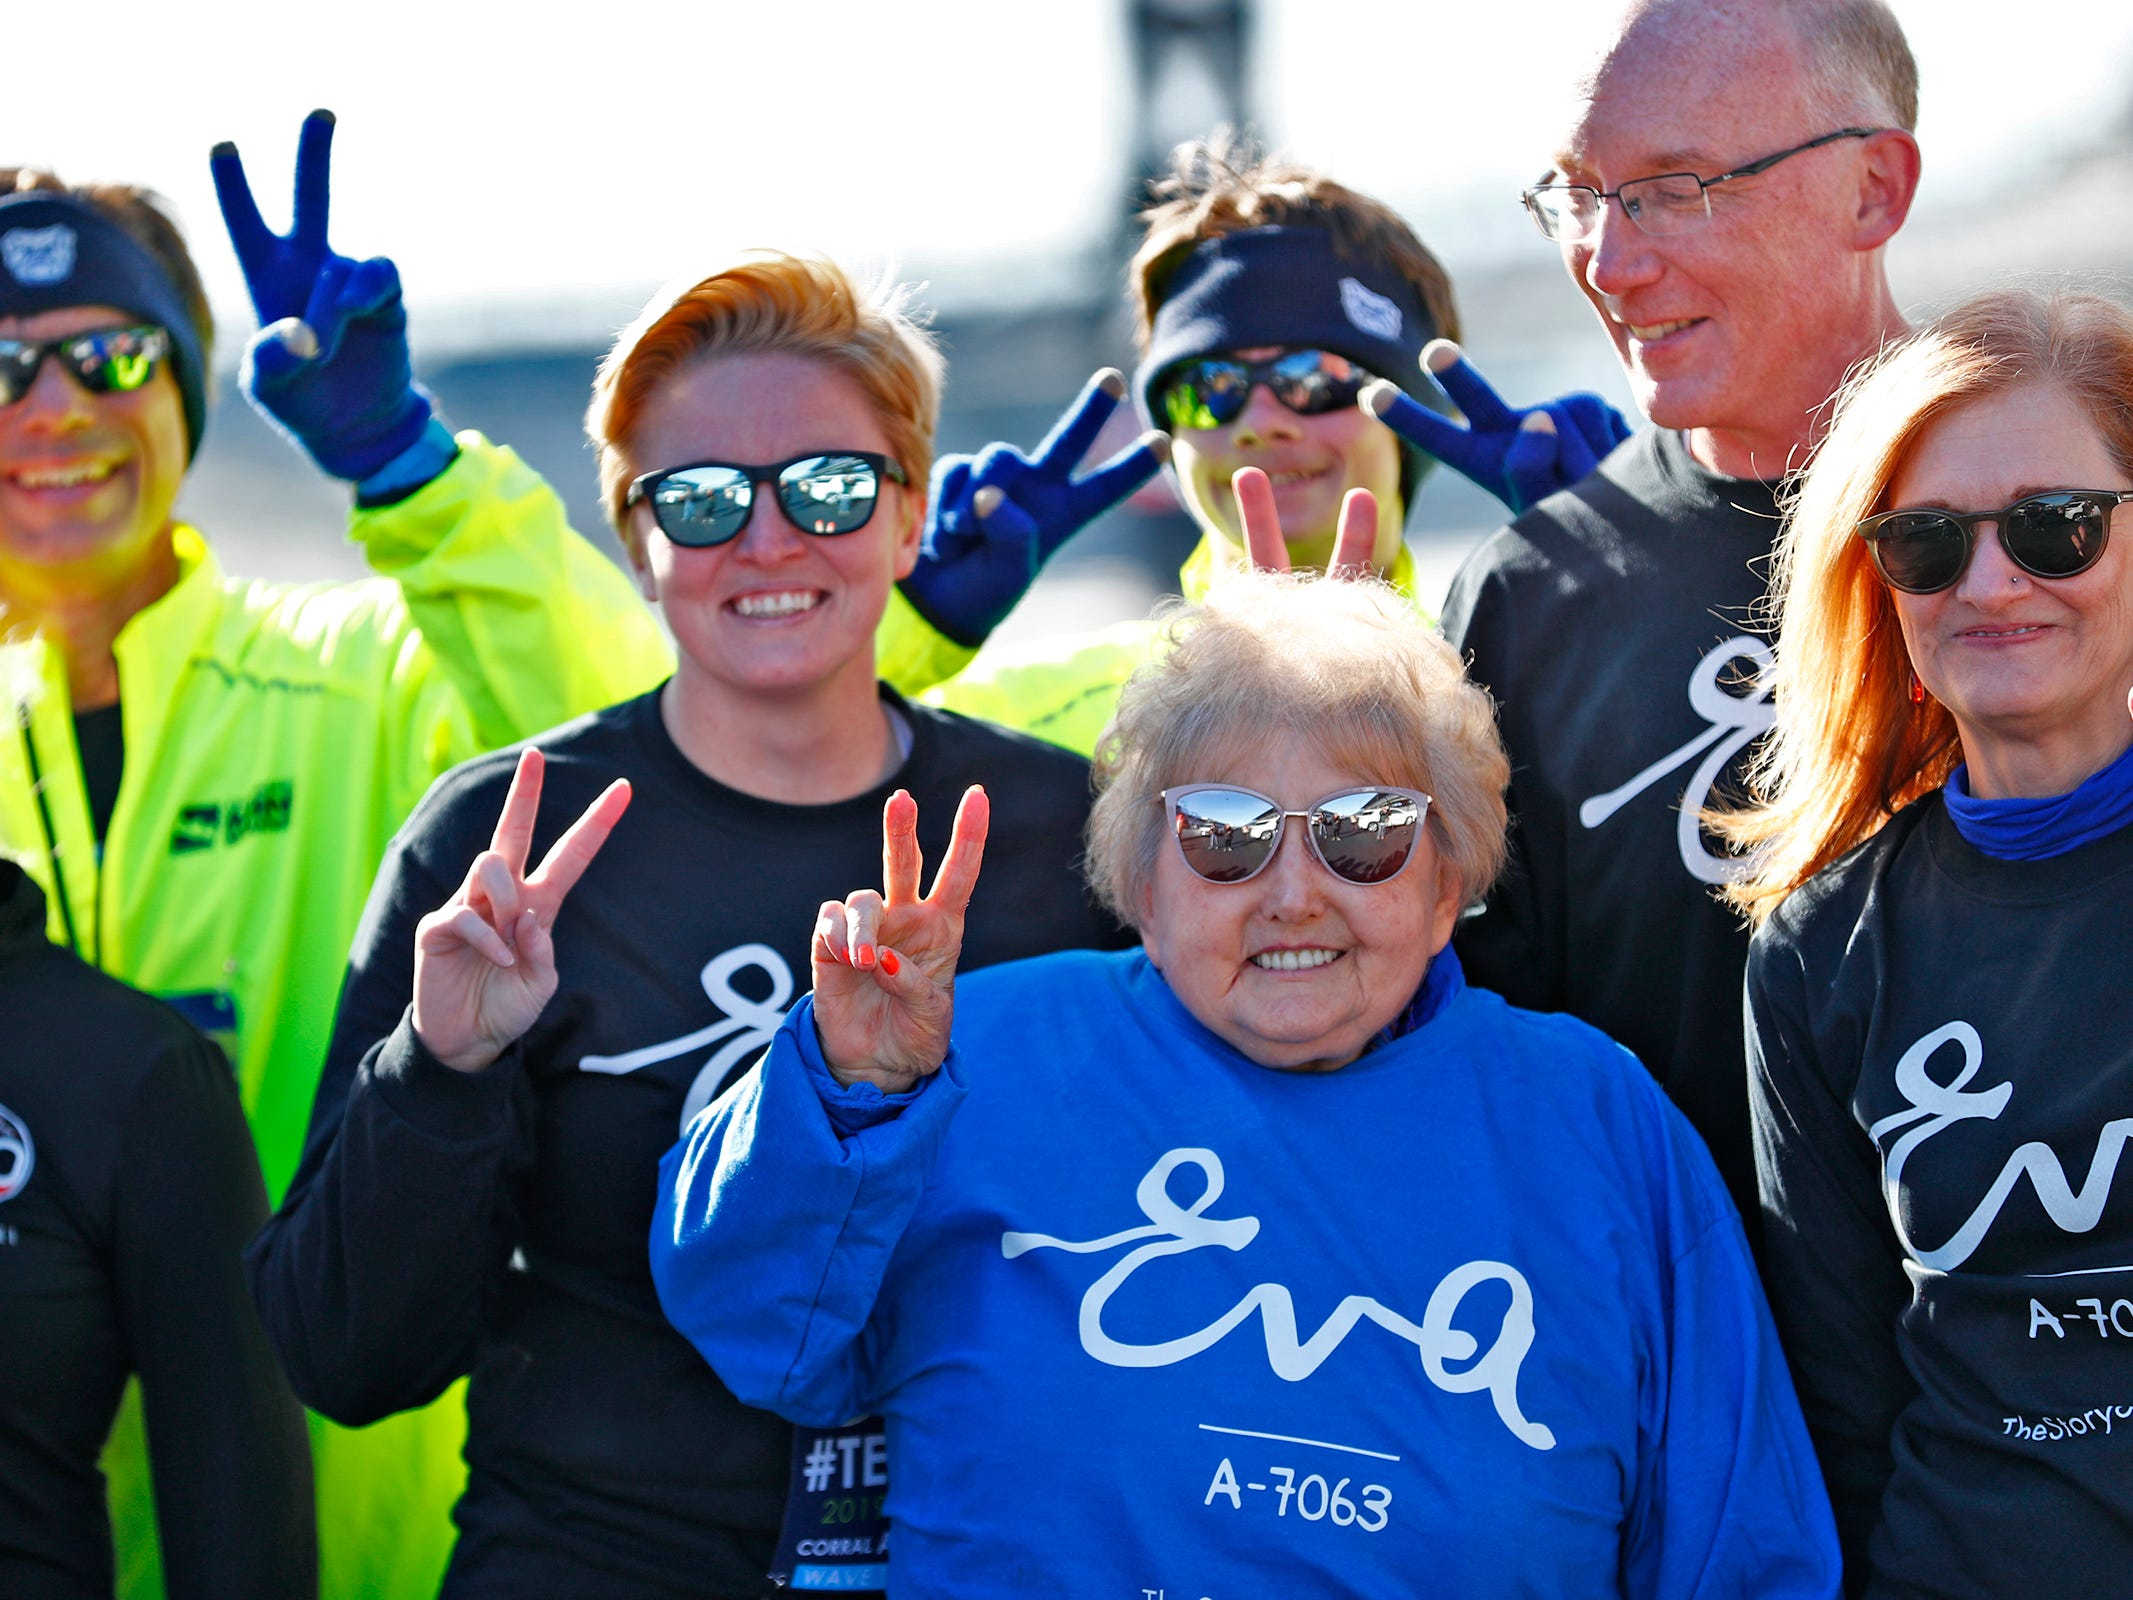 Holocaust survivor Eva Kor, center, joins others at the Indianapolis Motor Speedway Yard of Bricks for fun photos, Wednesday, Oct. 24, 2018, midway during the pace-setting run for the 2019 OneAmerica 500 Festival Mini-Marathon.  The 500 Festival will donate $1 to the CANDLES Holocaust Museum in Terre Haute for every mini-marathon participant who finishes the 2019 race in a better time than Team Eva.  Kor ran the very last of the relay race.